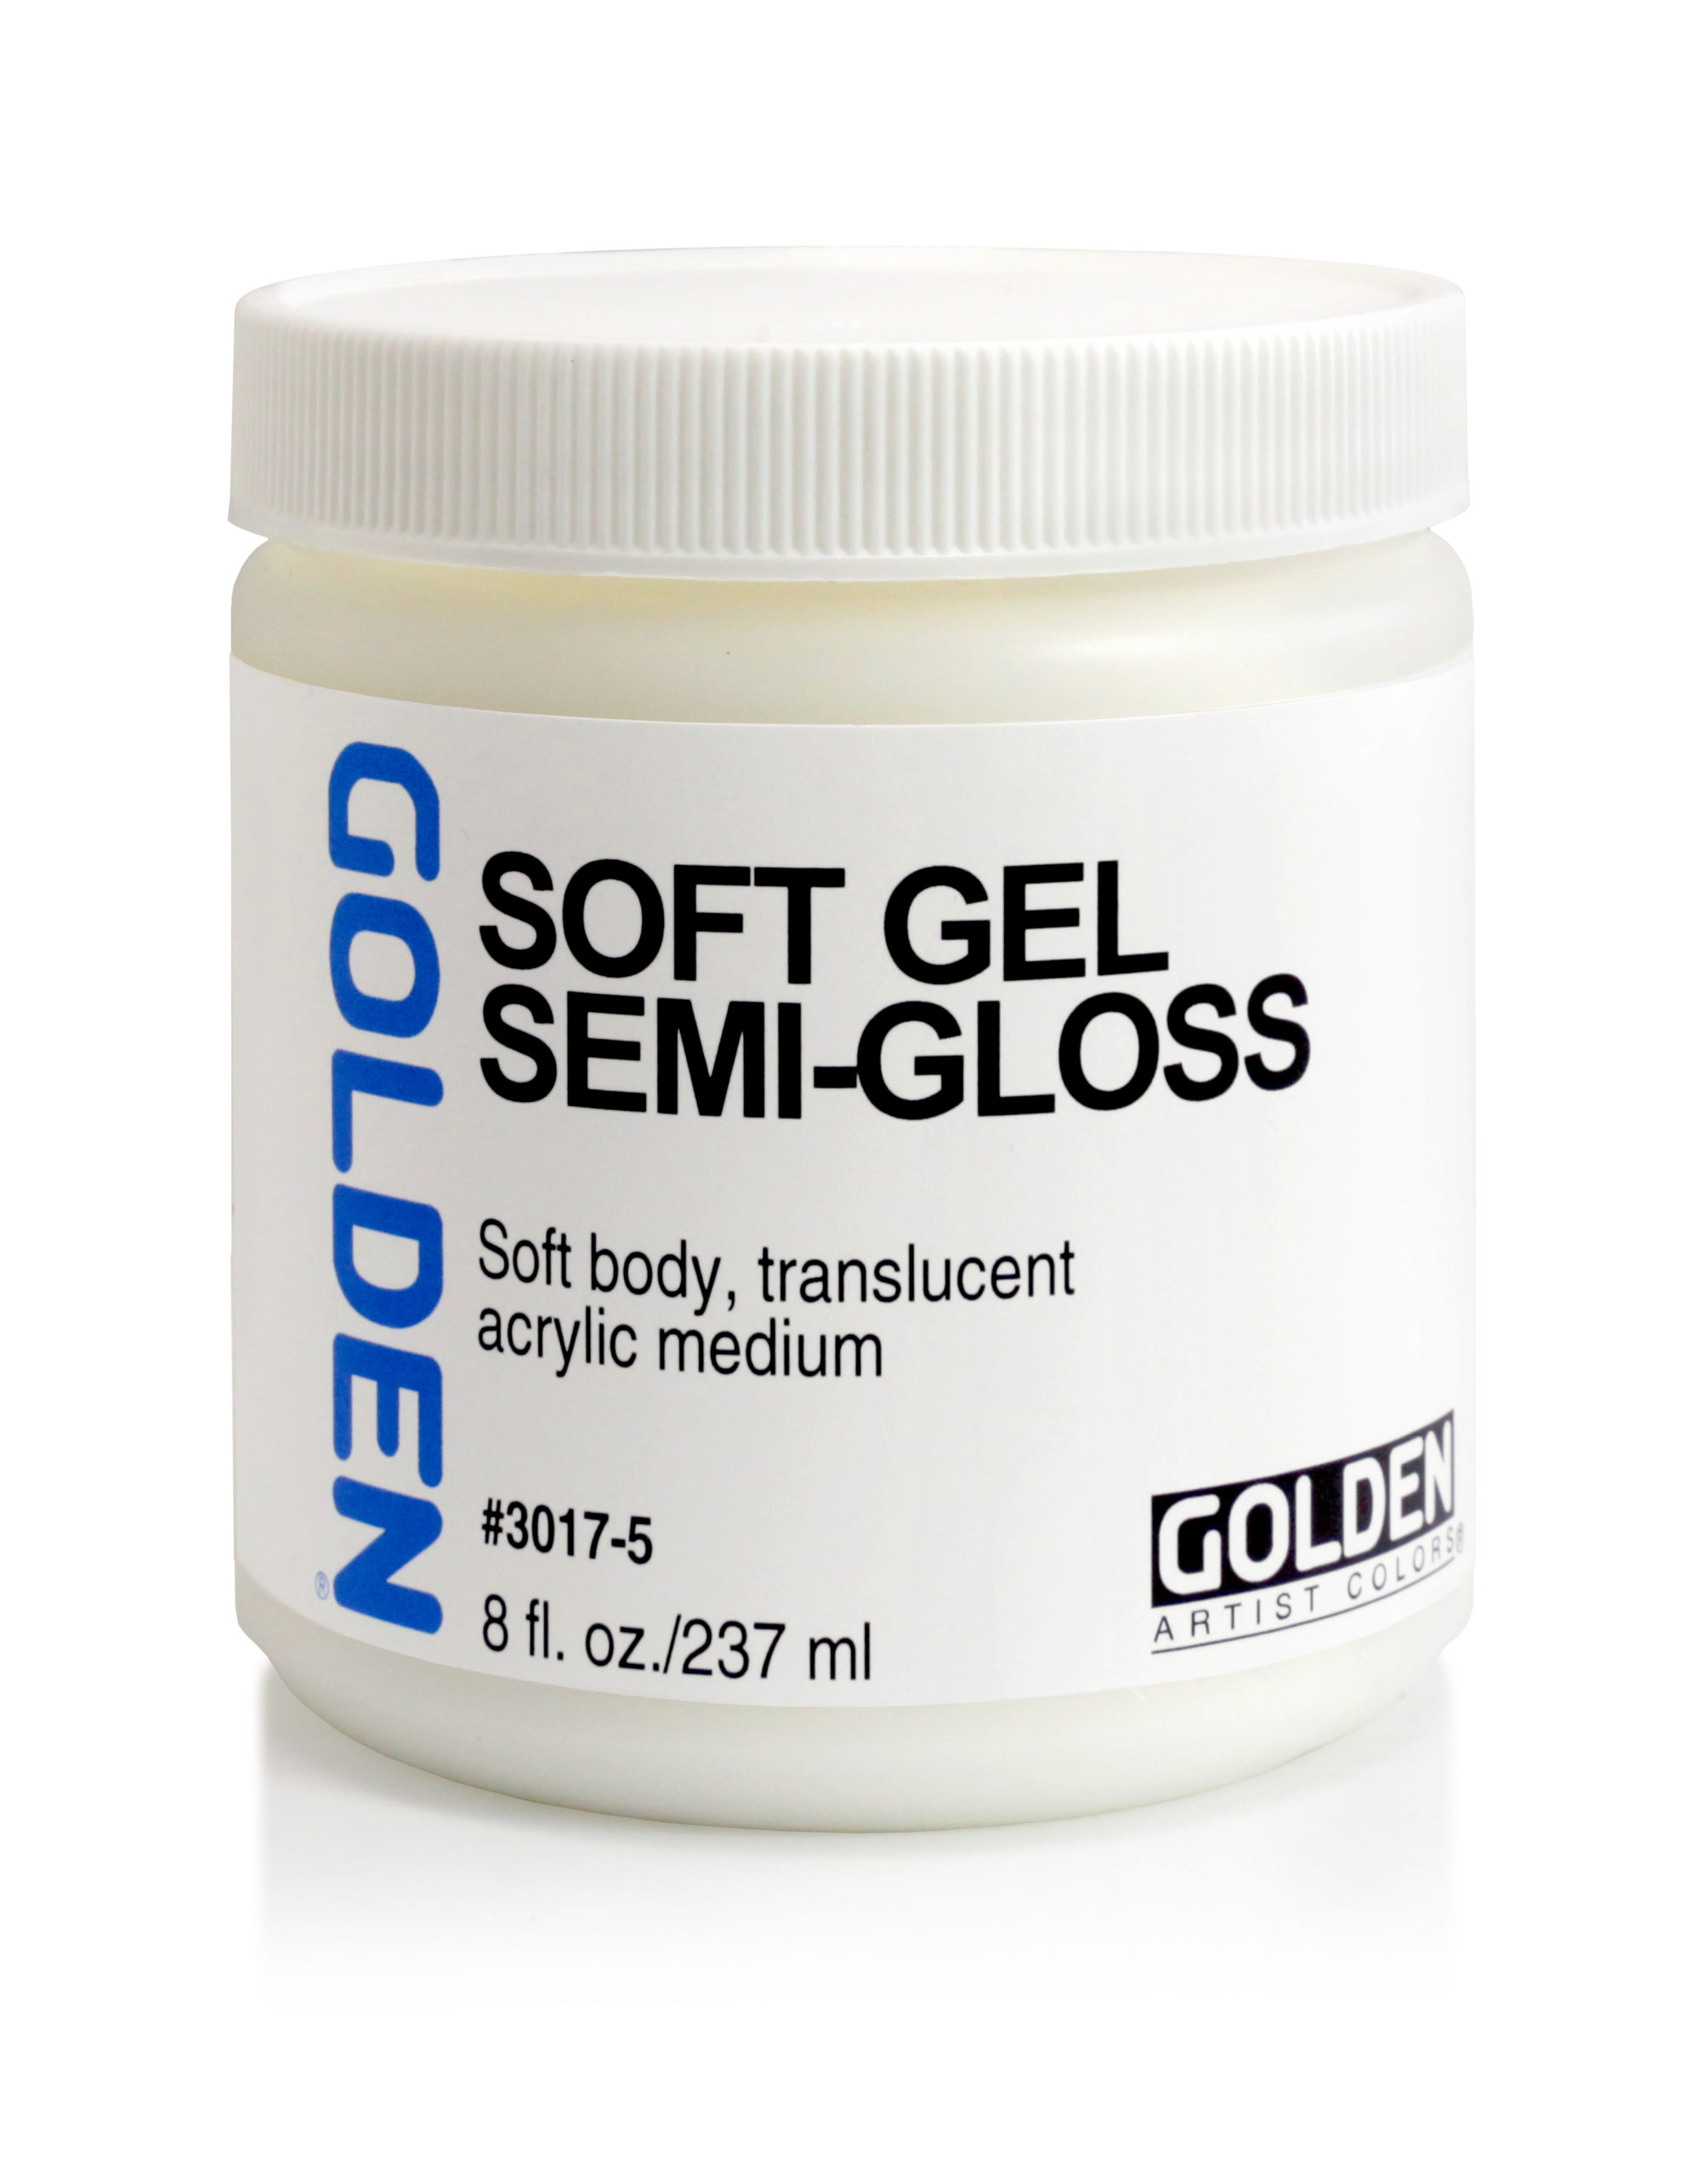 Soft Gel Semi-Gloss